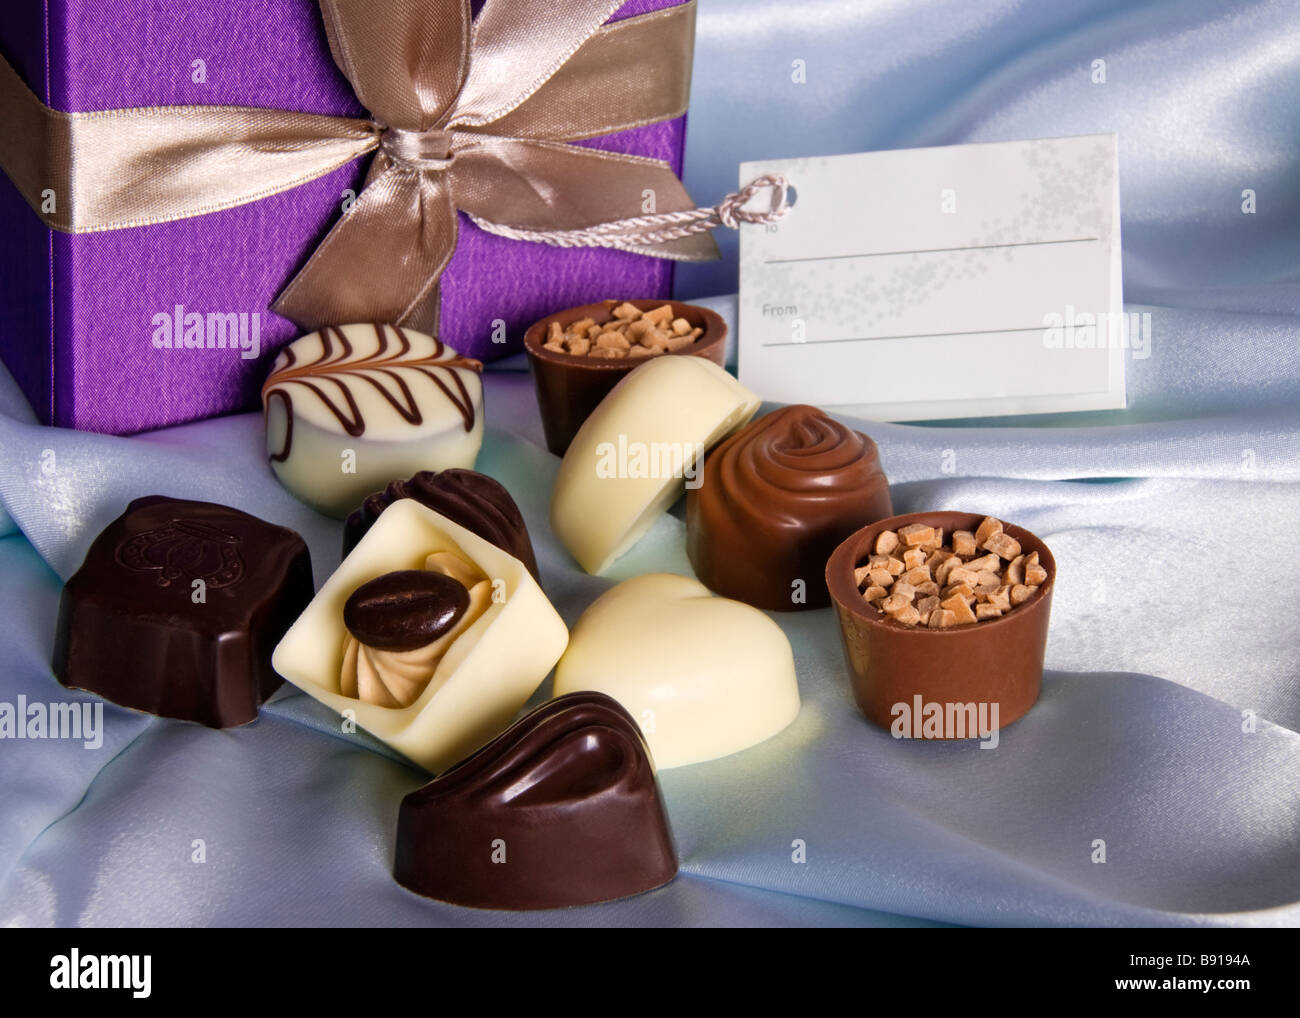 Boîte-cadeau d'un assortiment de chocolats belges. Photo Stock